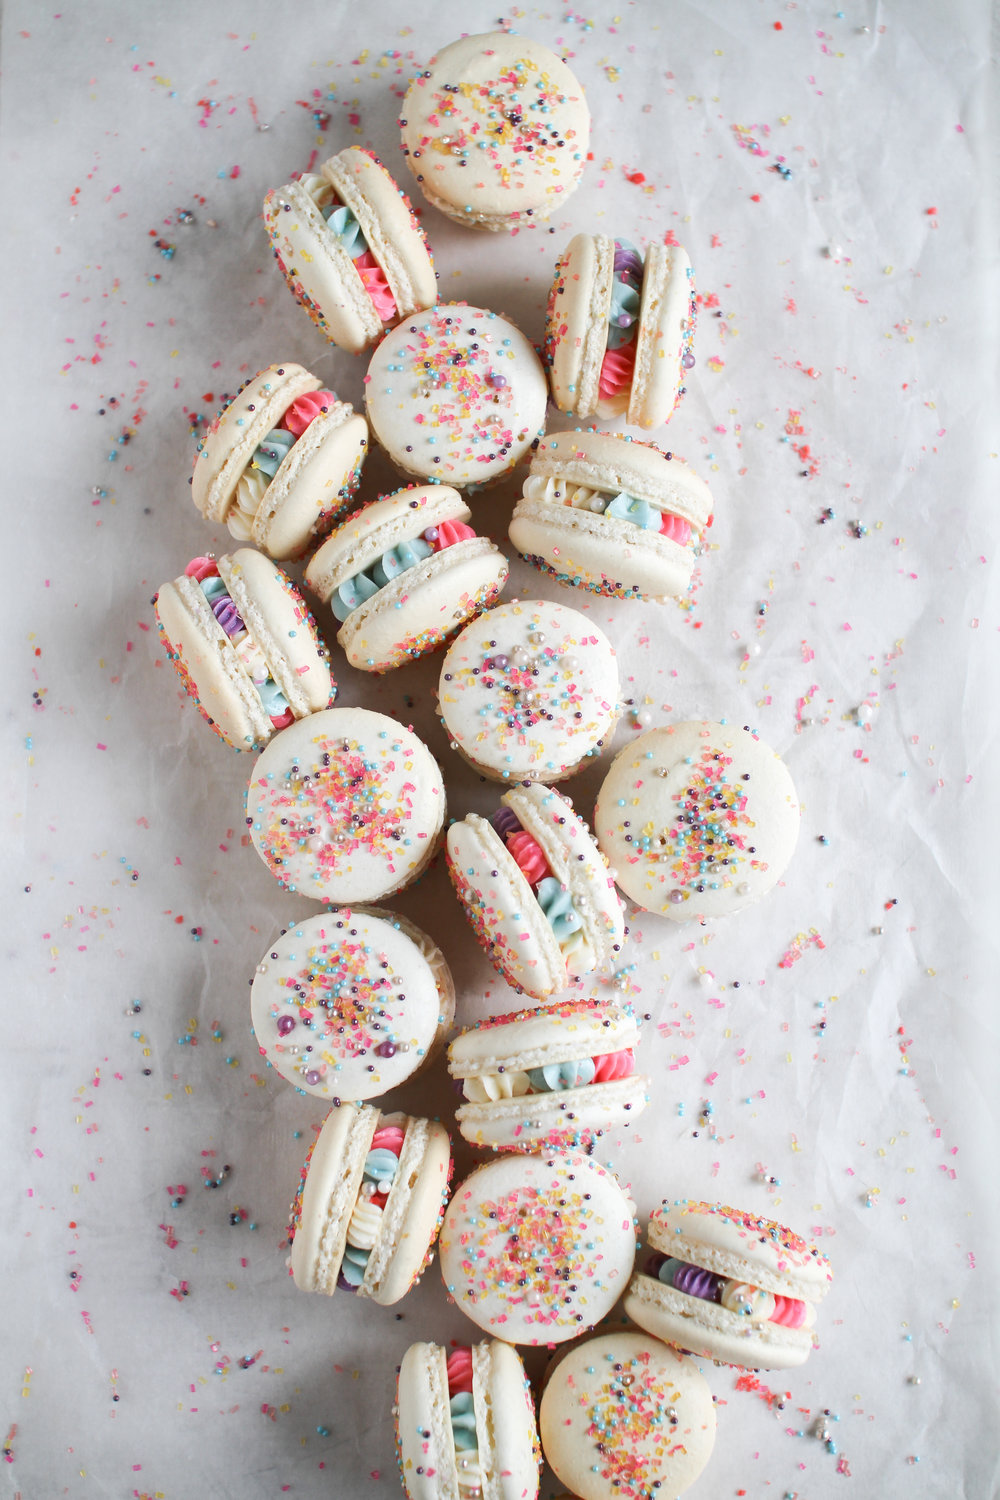 New Year's Celebration Macarons - classic vanilla shell with Heilala vanilla bean swiss meringue buttercream and pop rocks candy center by Fox and Crane - foxandcrane.com